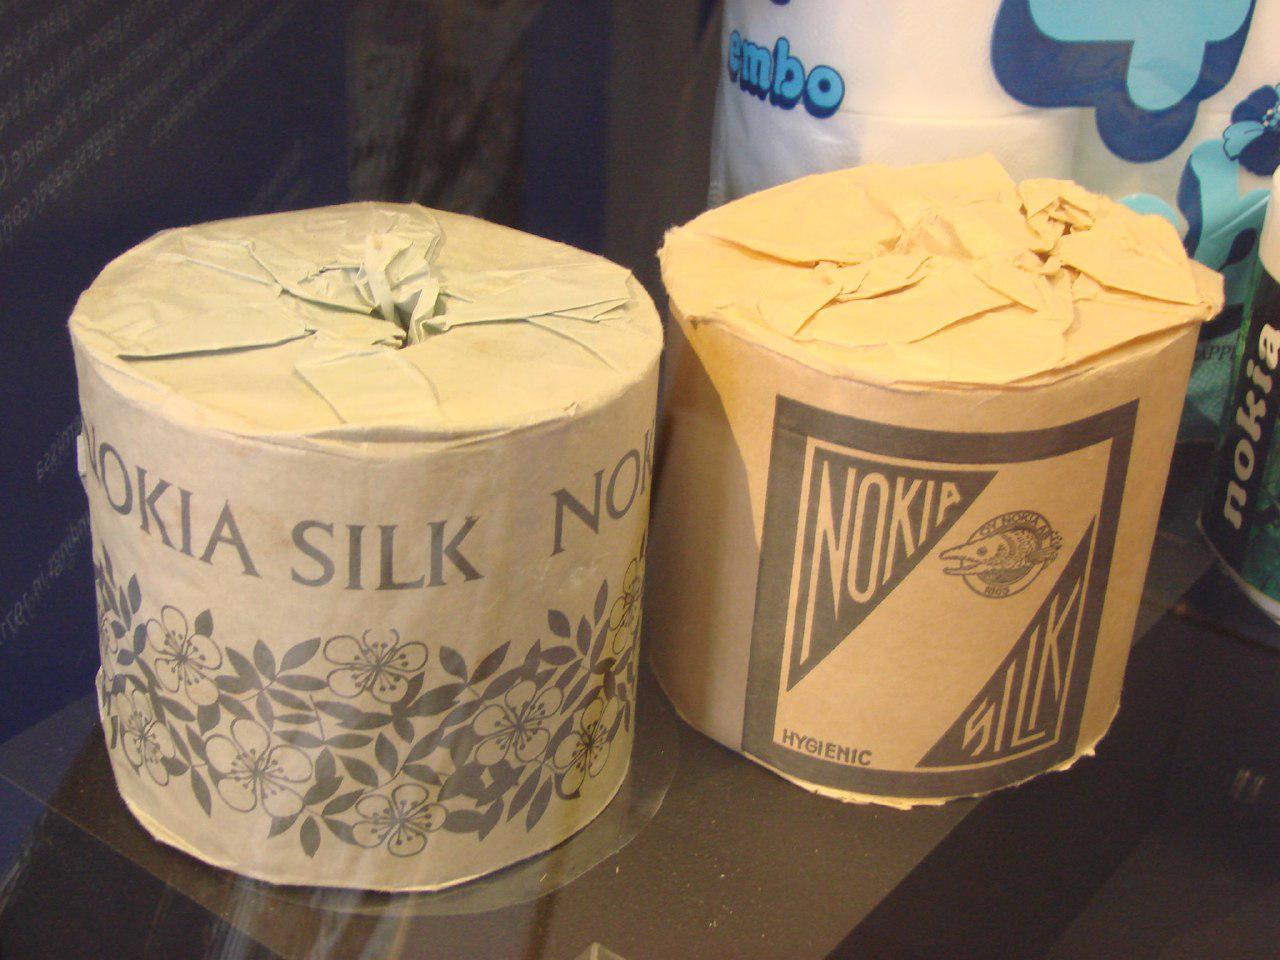 Nokia first product 1865